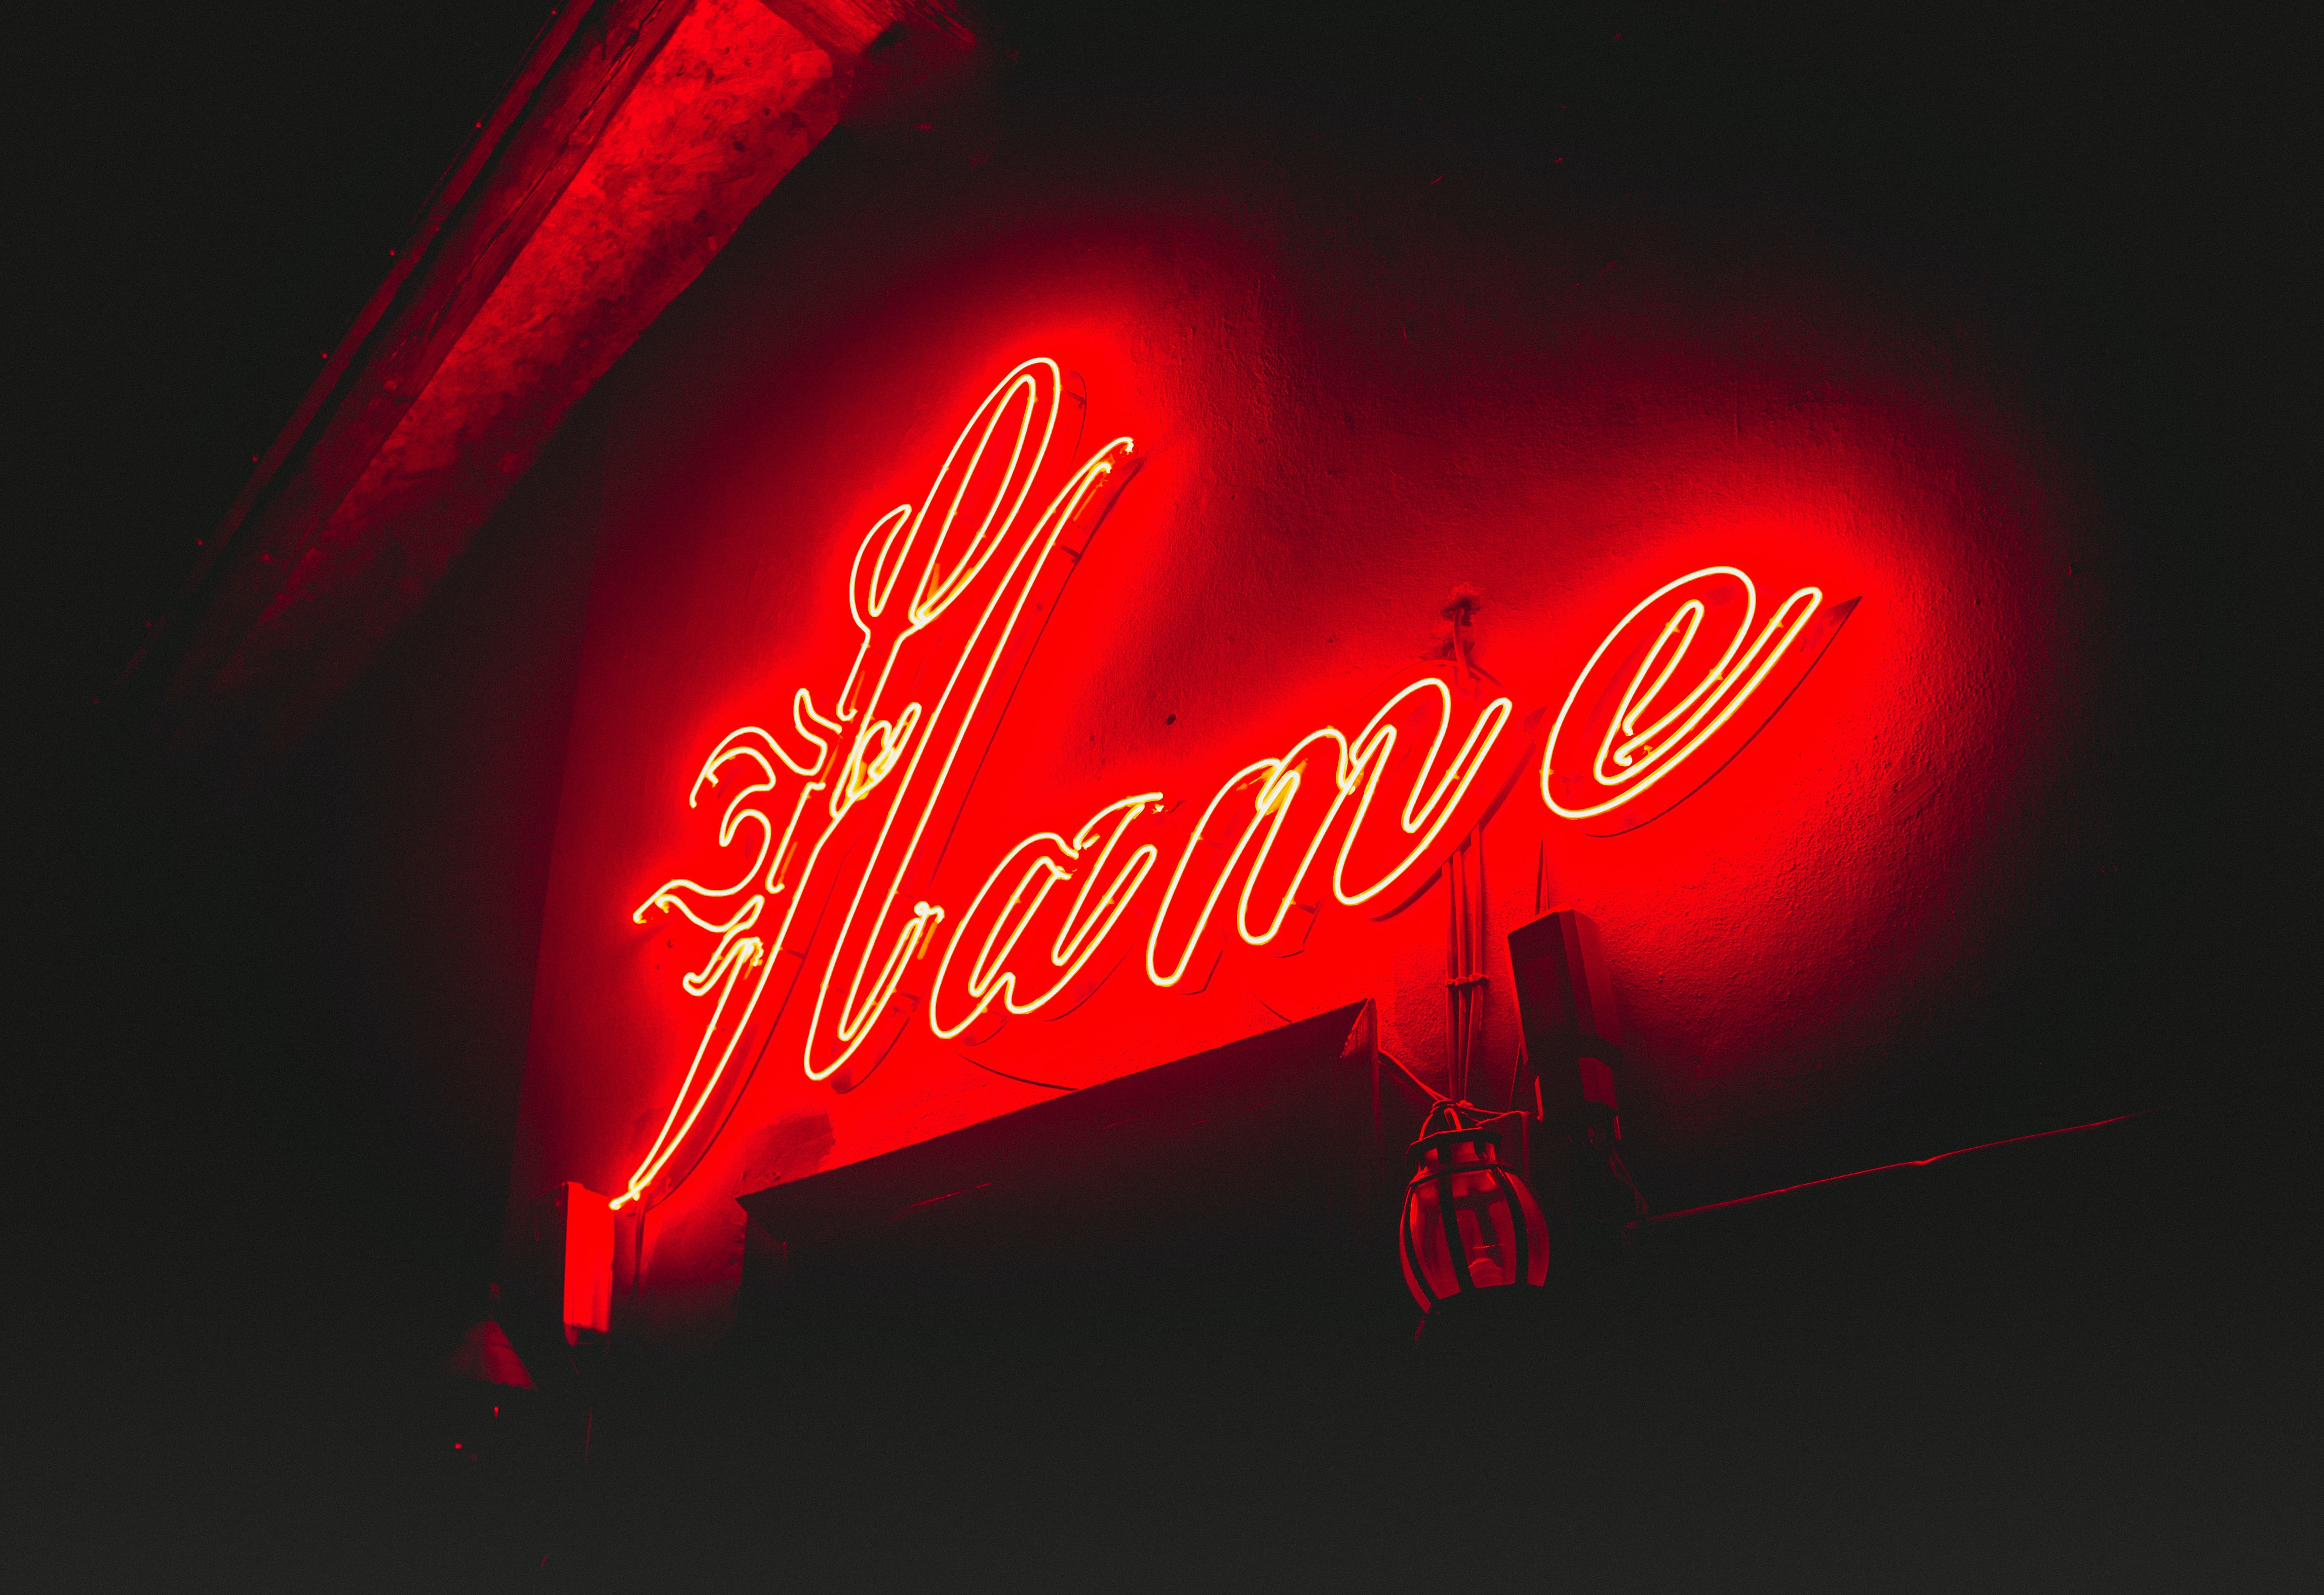 Flame neon light signage